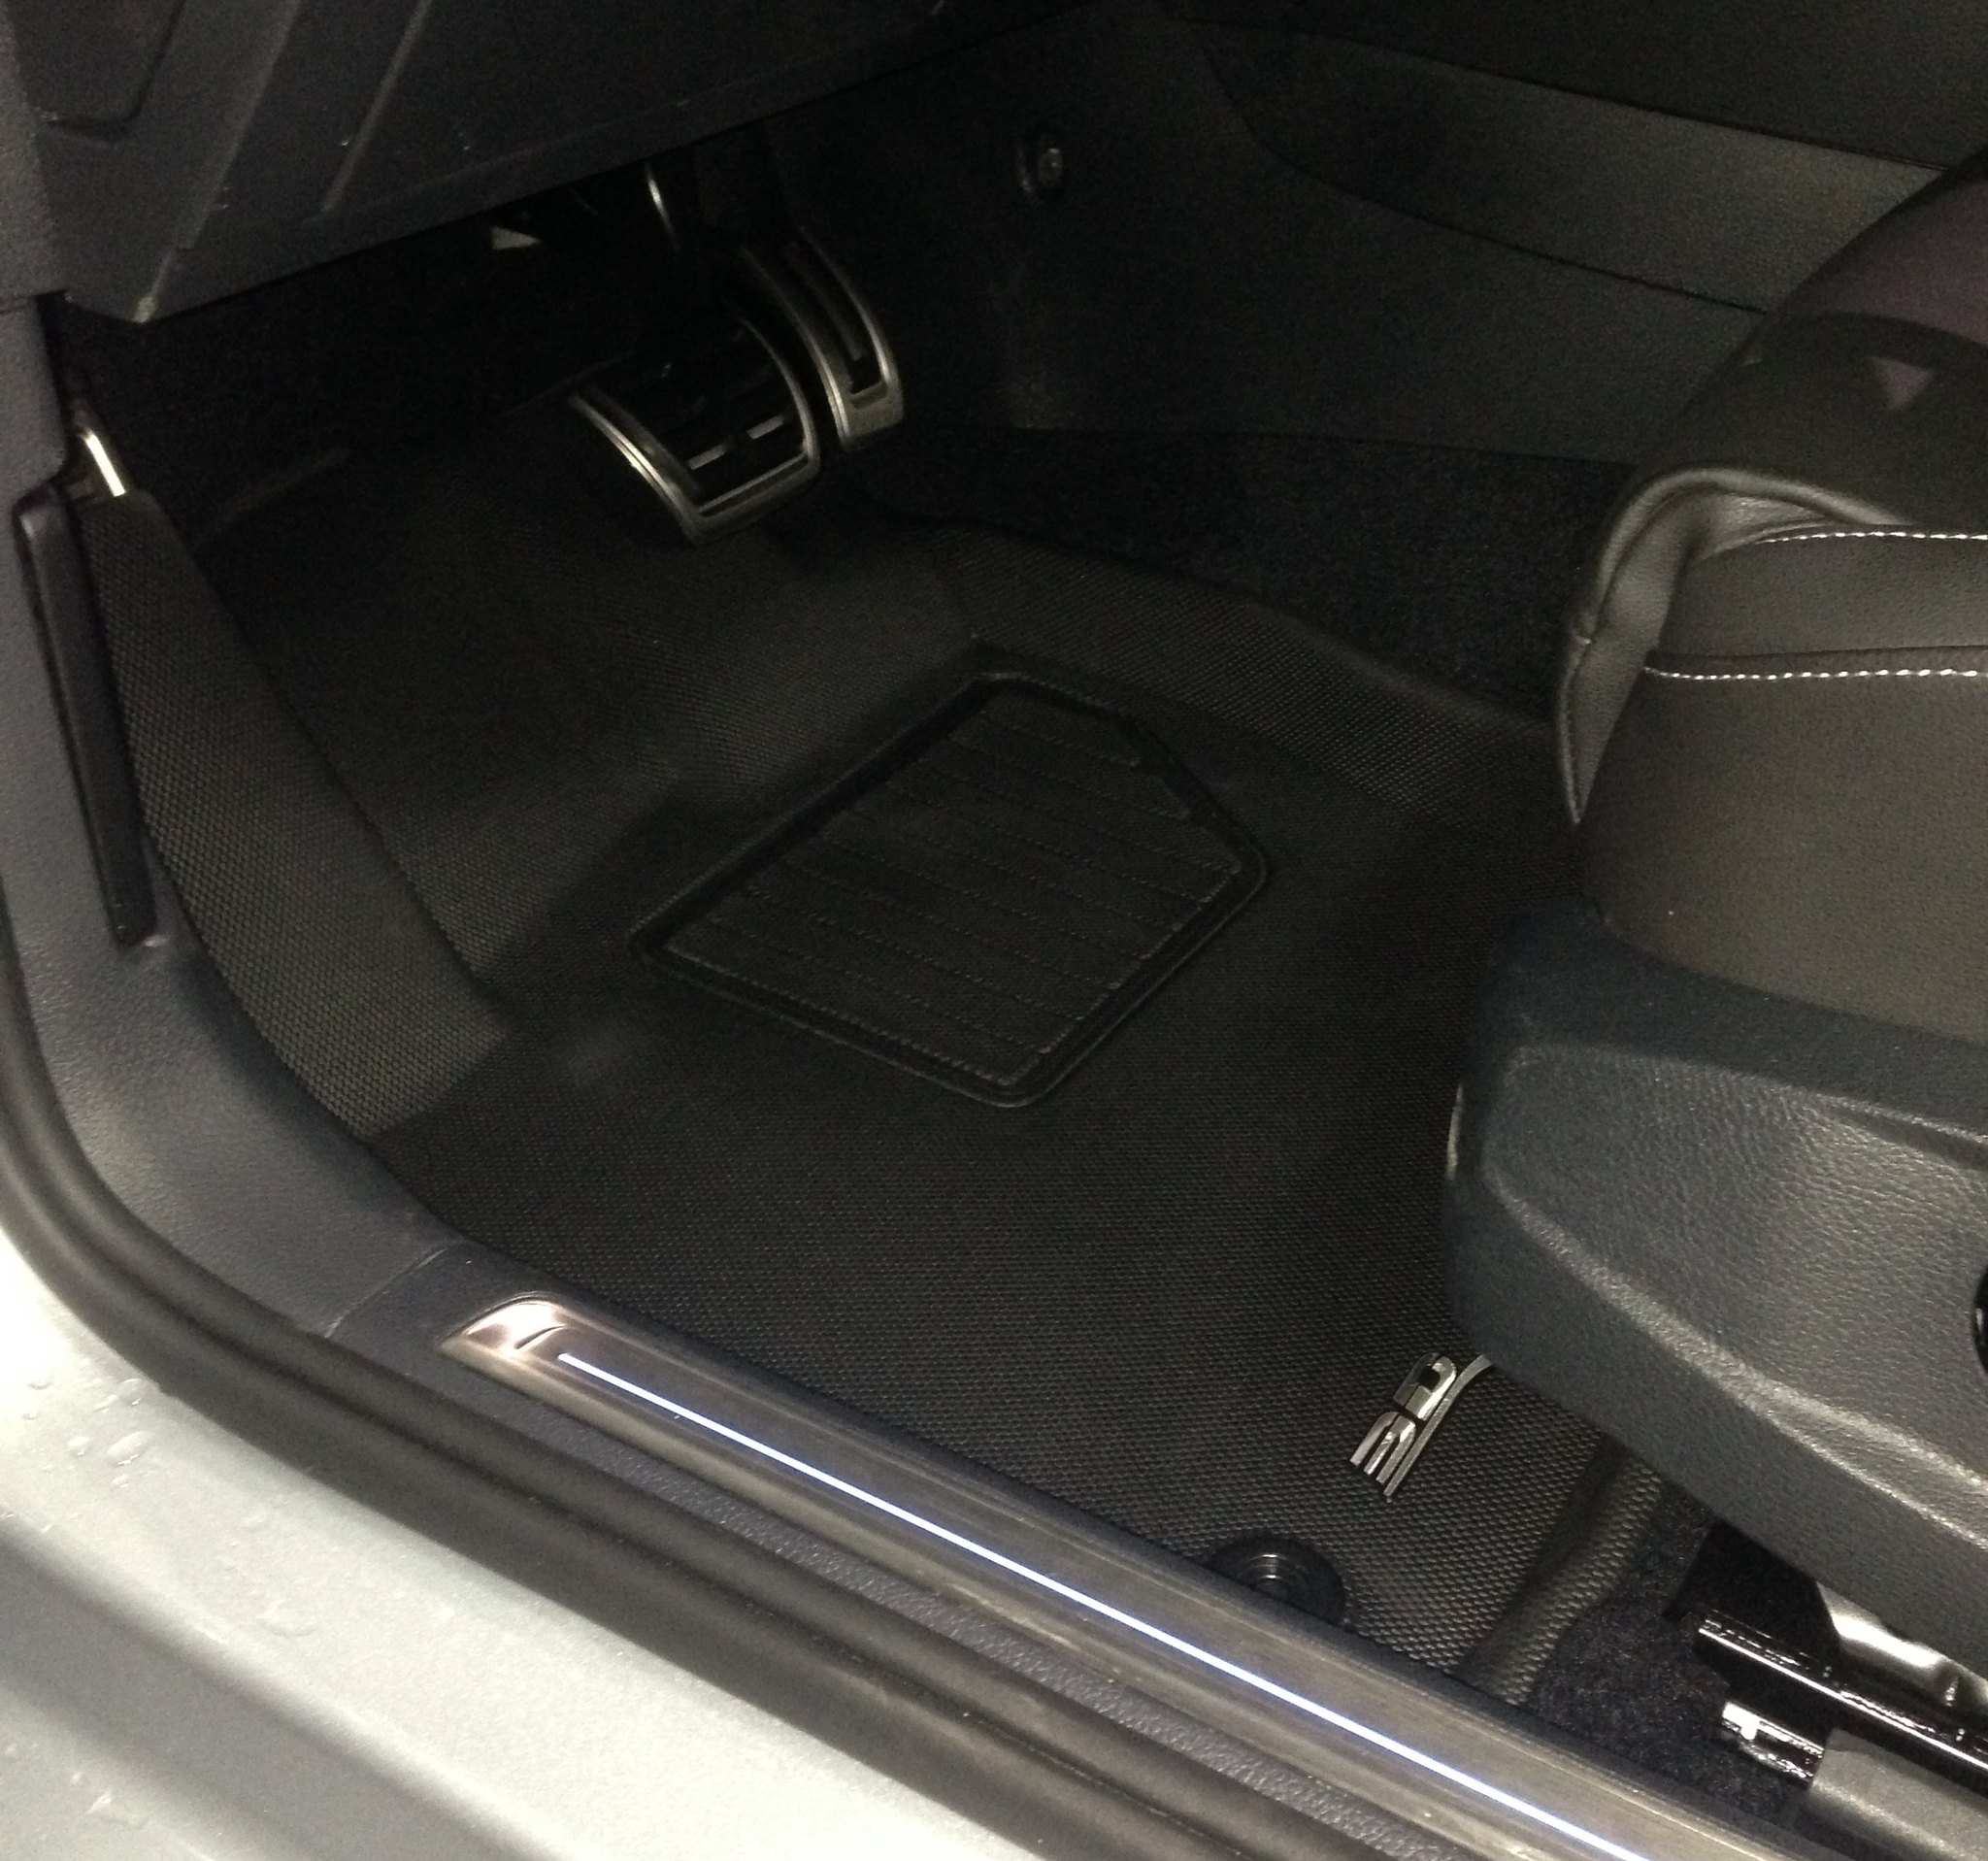 Weathertech mats costco - The Costco Canada A3 Mats Fit Perfectly